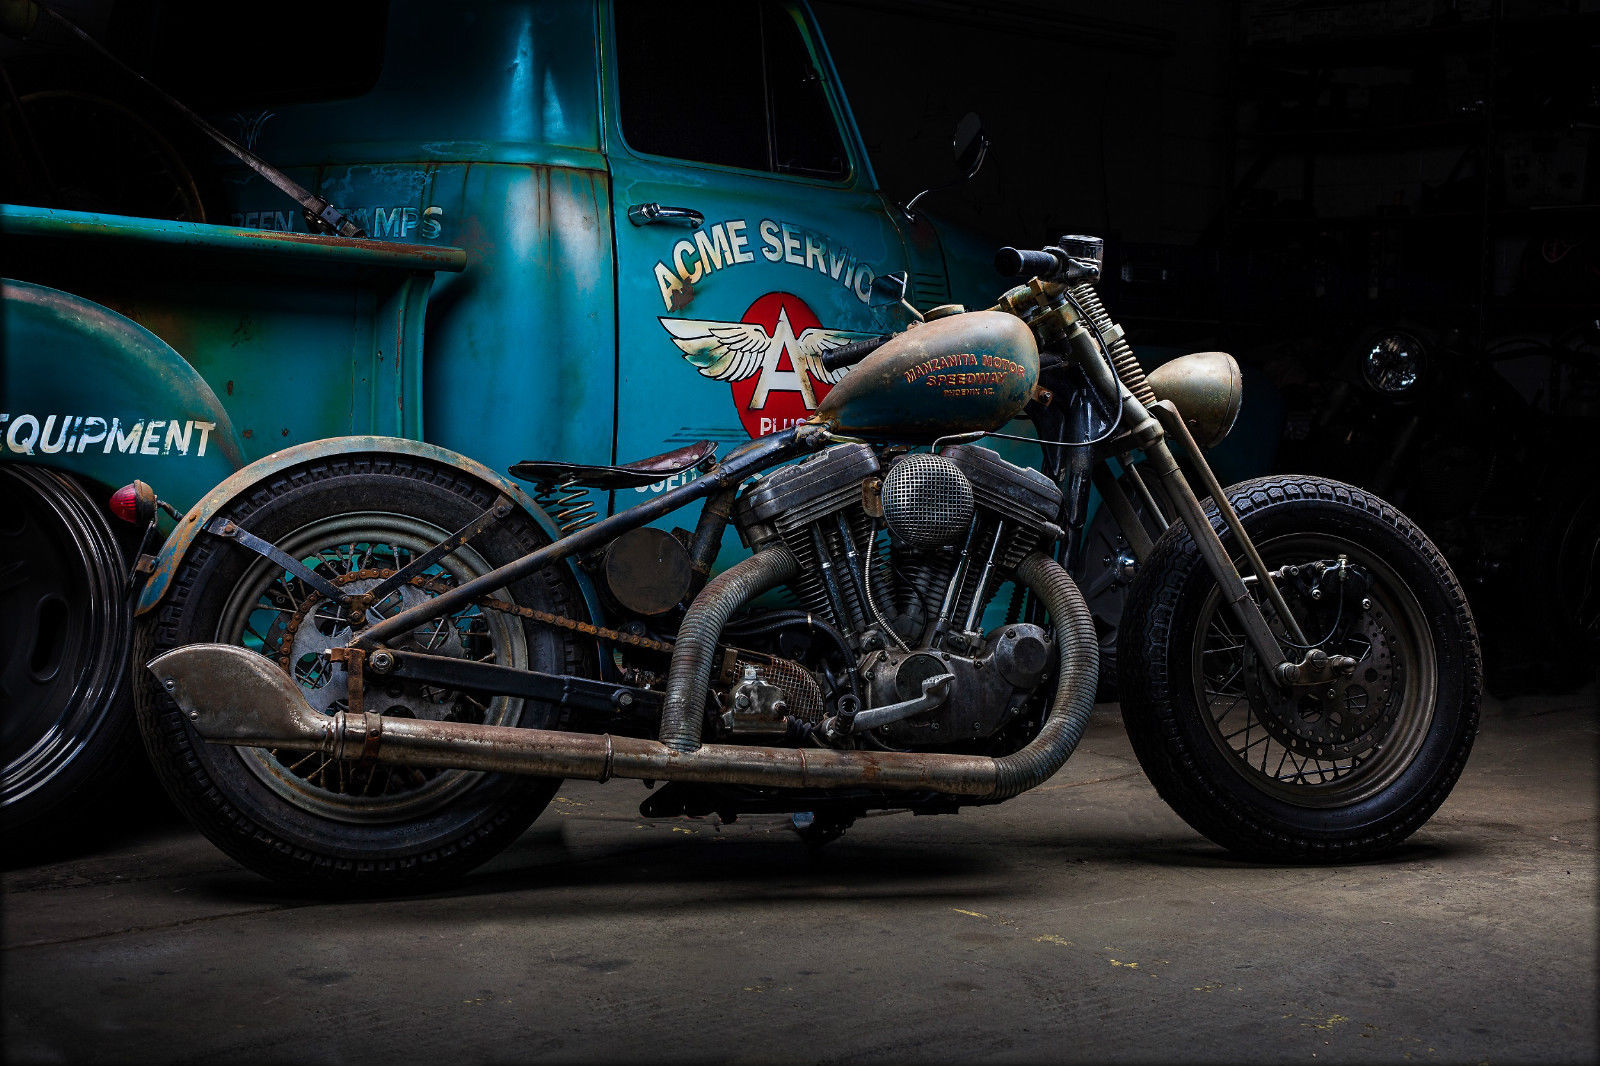 Harley Davidson Sportster Custom Bobber By Bobberpros Vintage Style Rat Bike on Sportster Ignition Coil